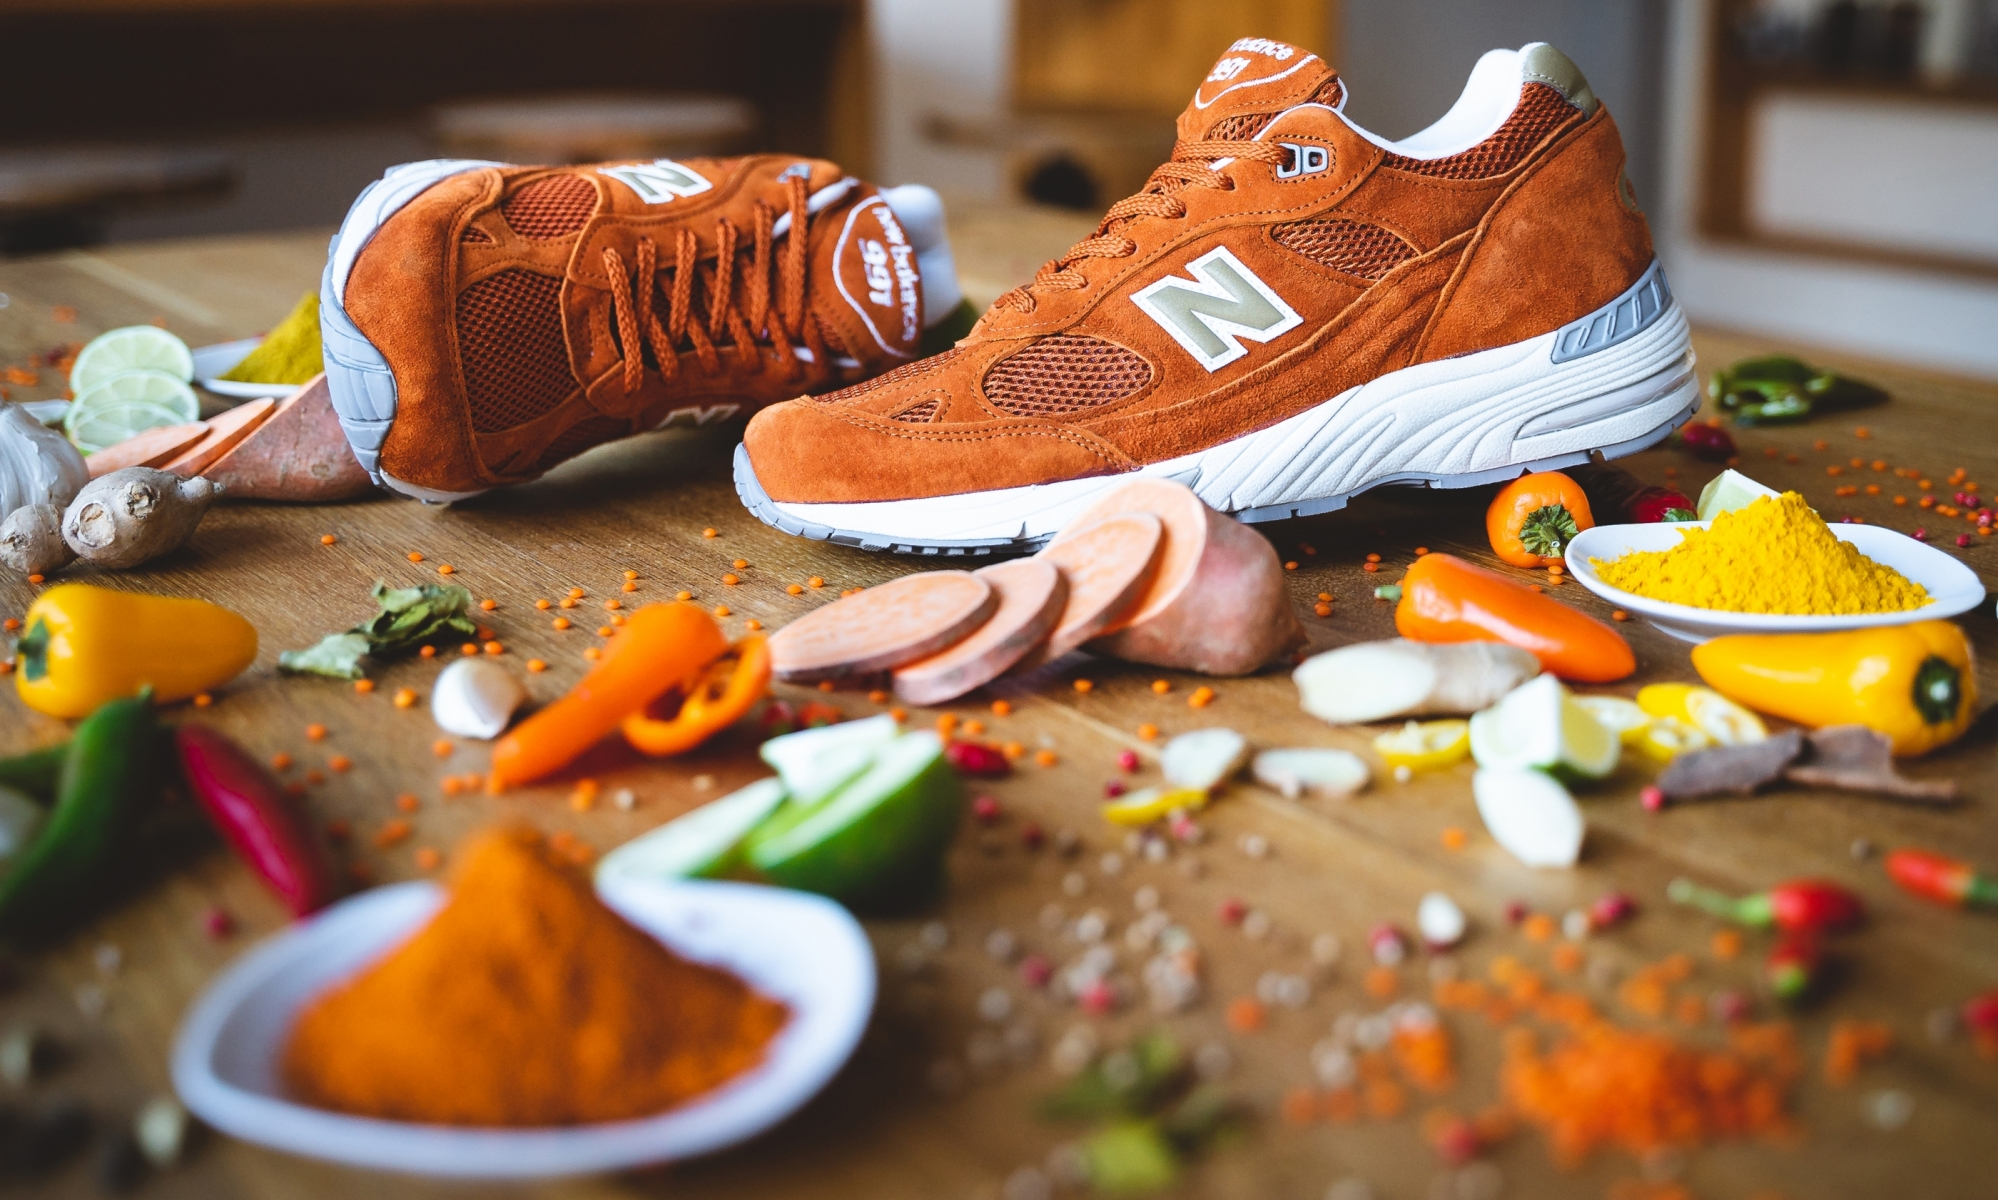 new balance MSE eastern spices burnt orange